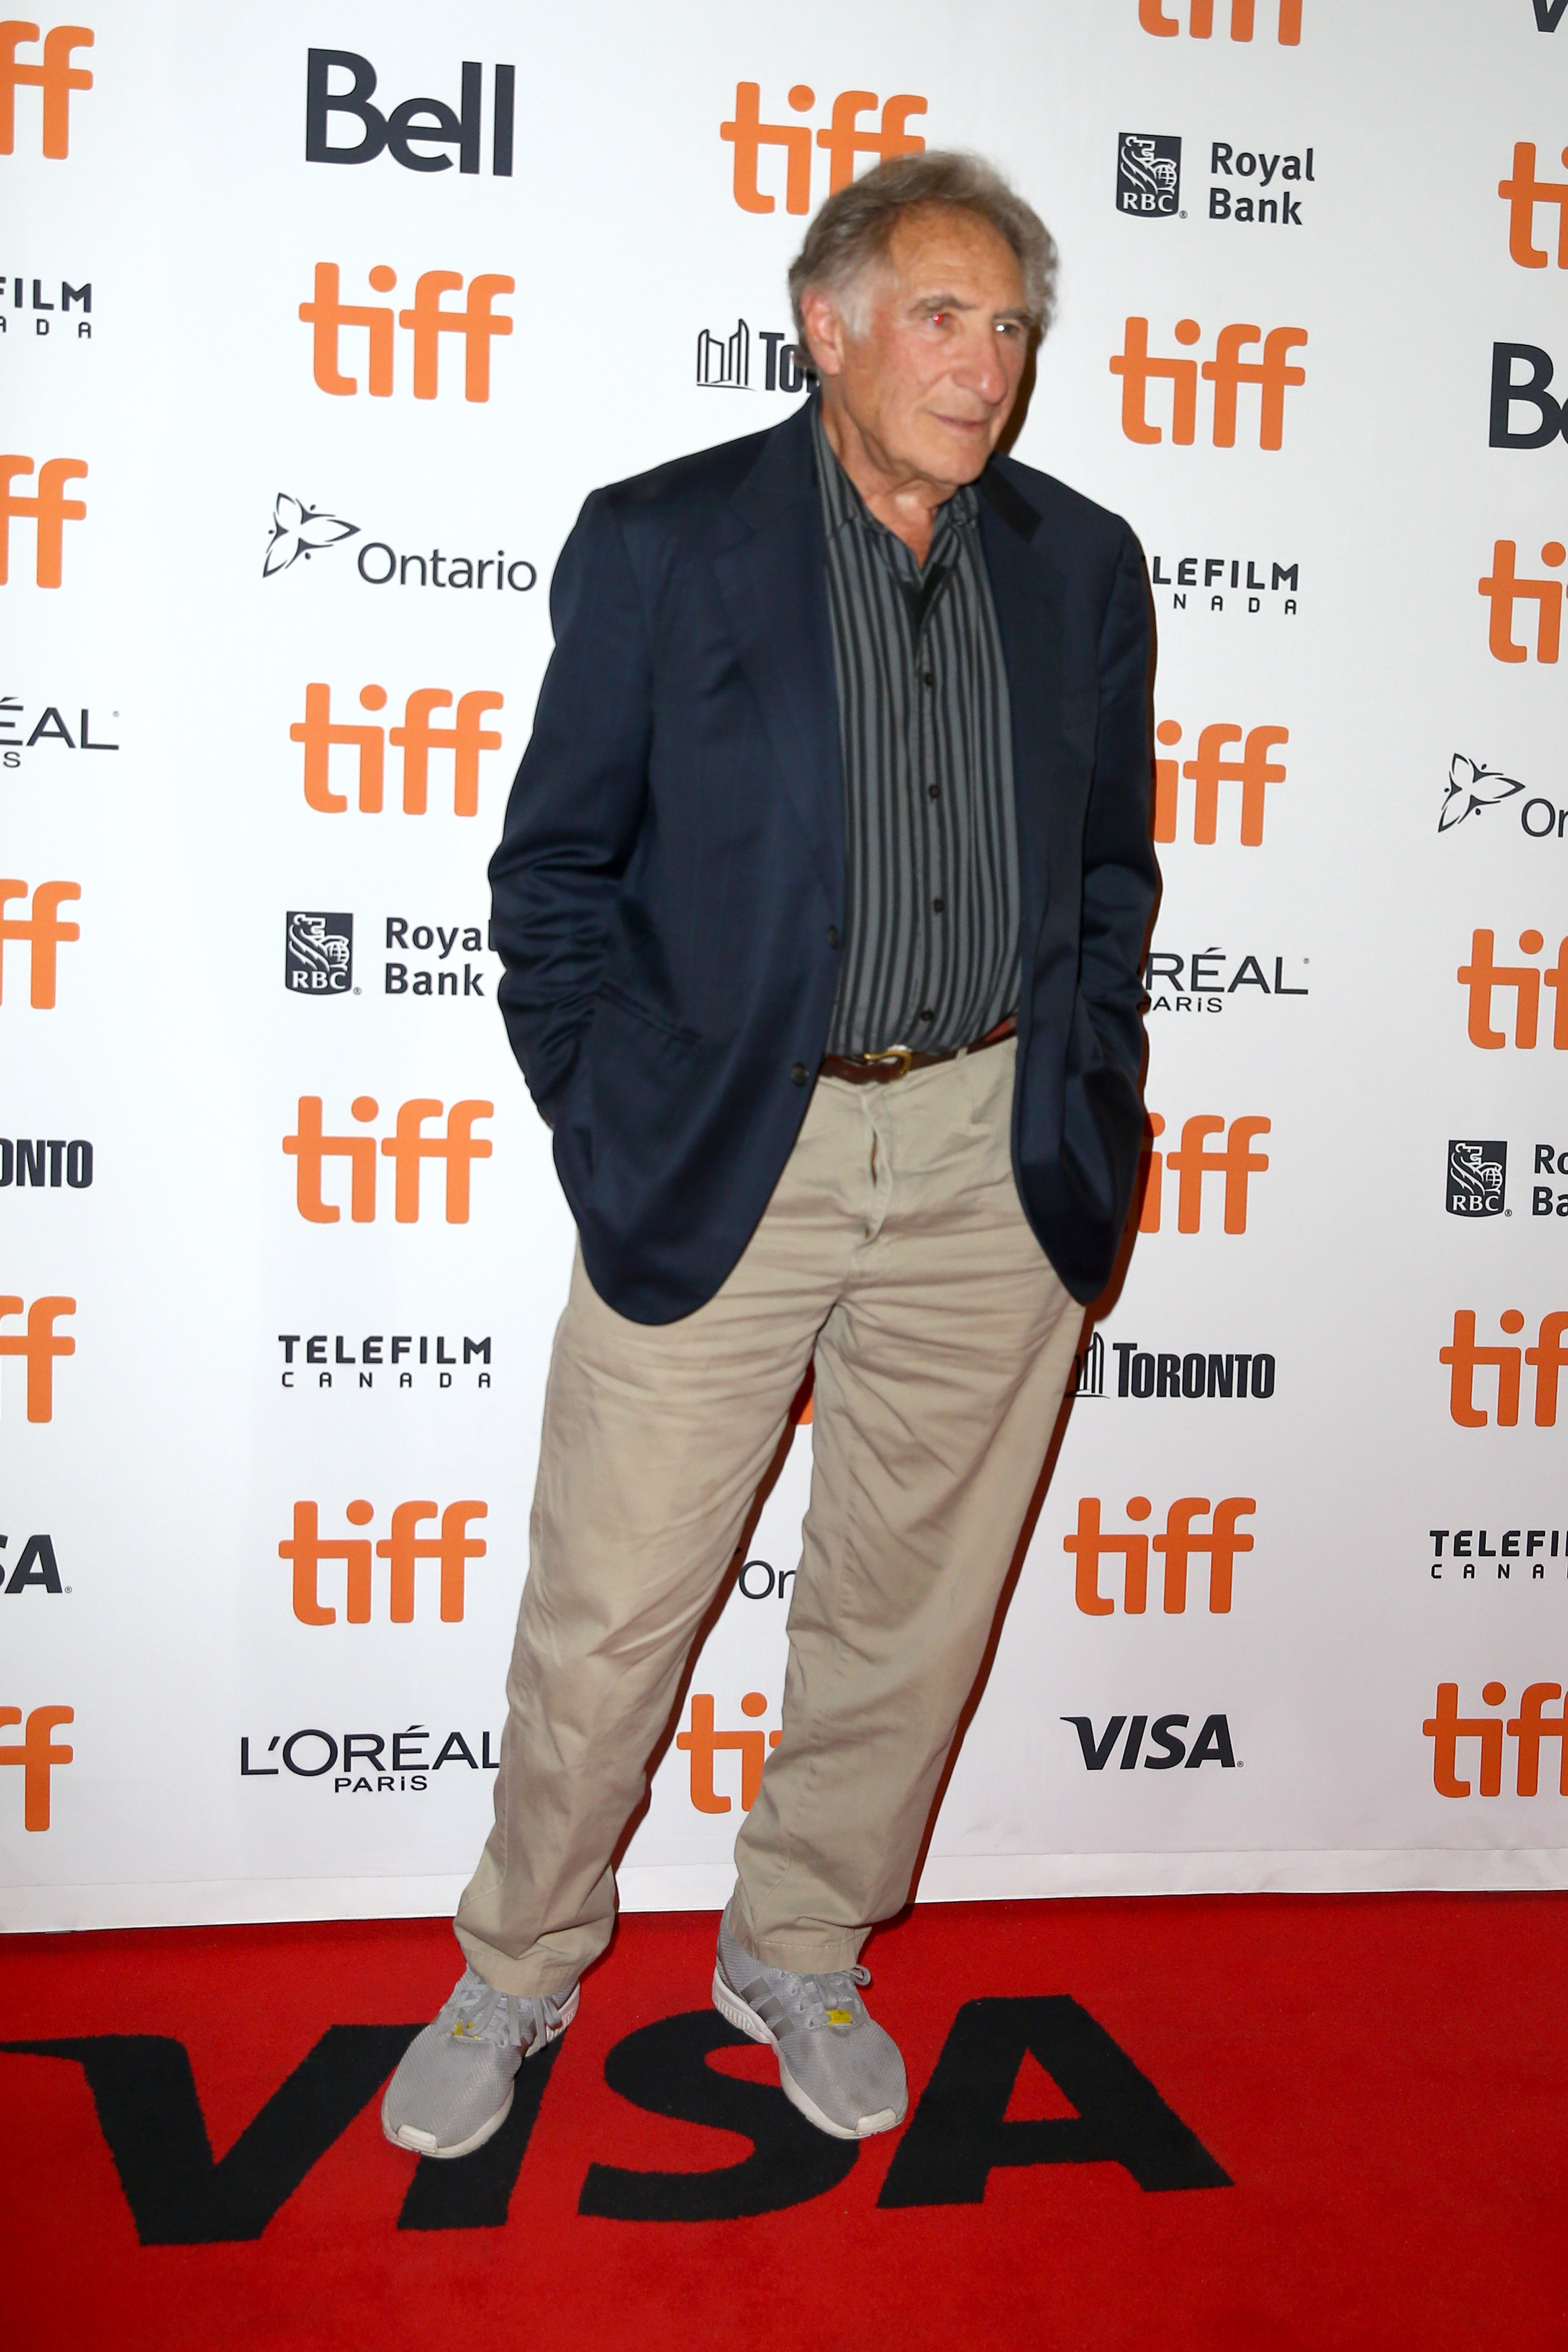 Judd Hirsch on September 09, 2019 in Toronto, Canada | Source: Getty Images/Global Images Ukraine